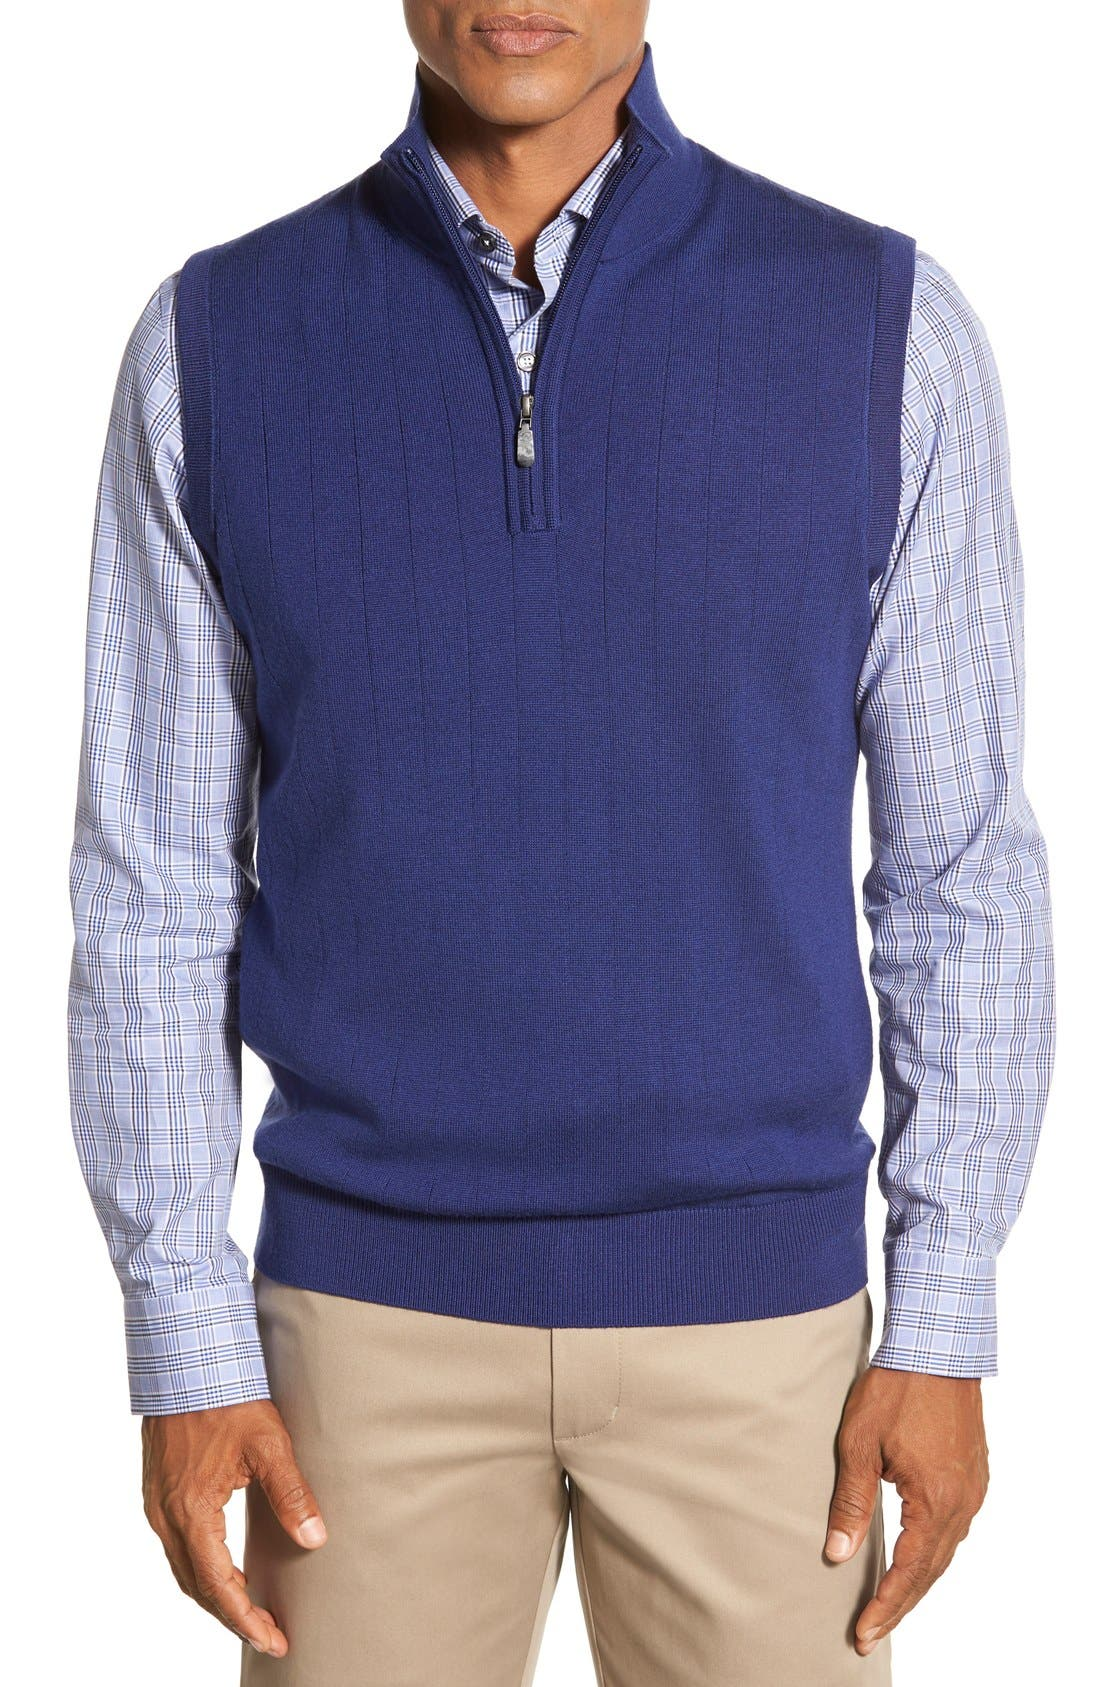 Quarter Zip Wool Sweater Vest,                             Main thumbnail 1, color,                             Summer Navy